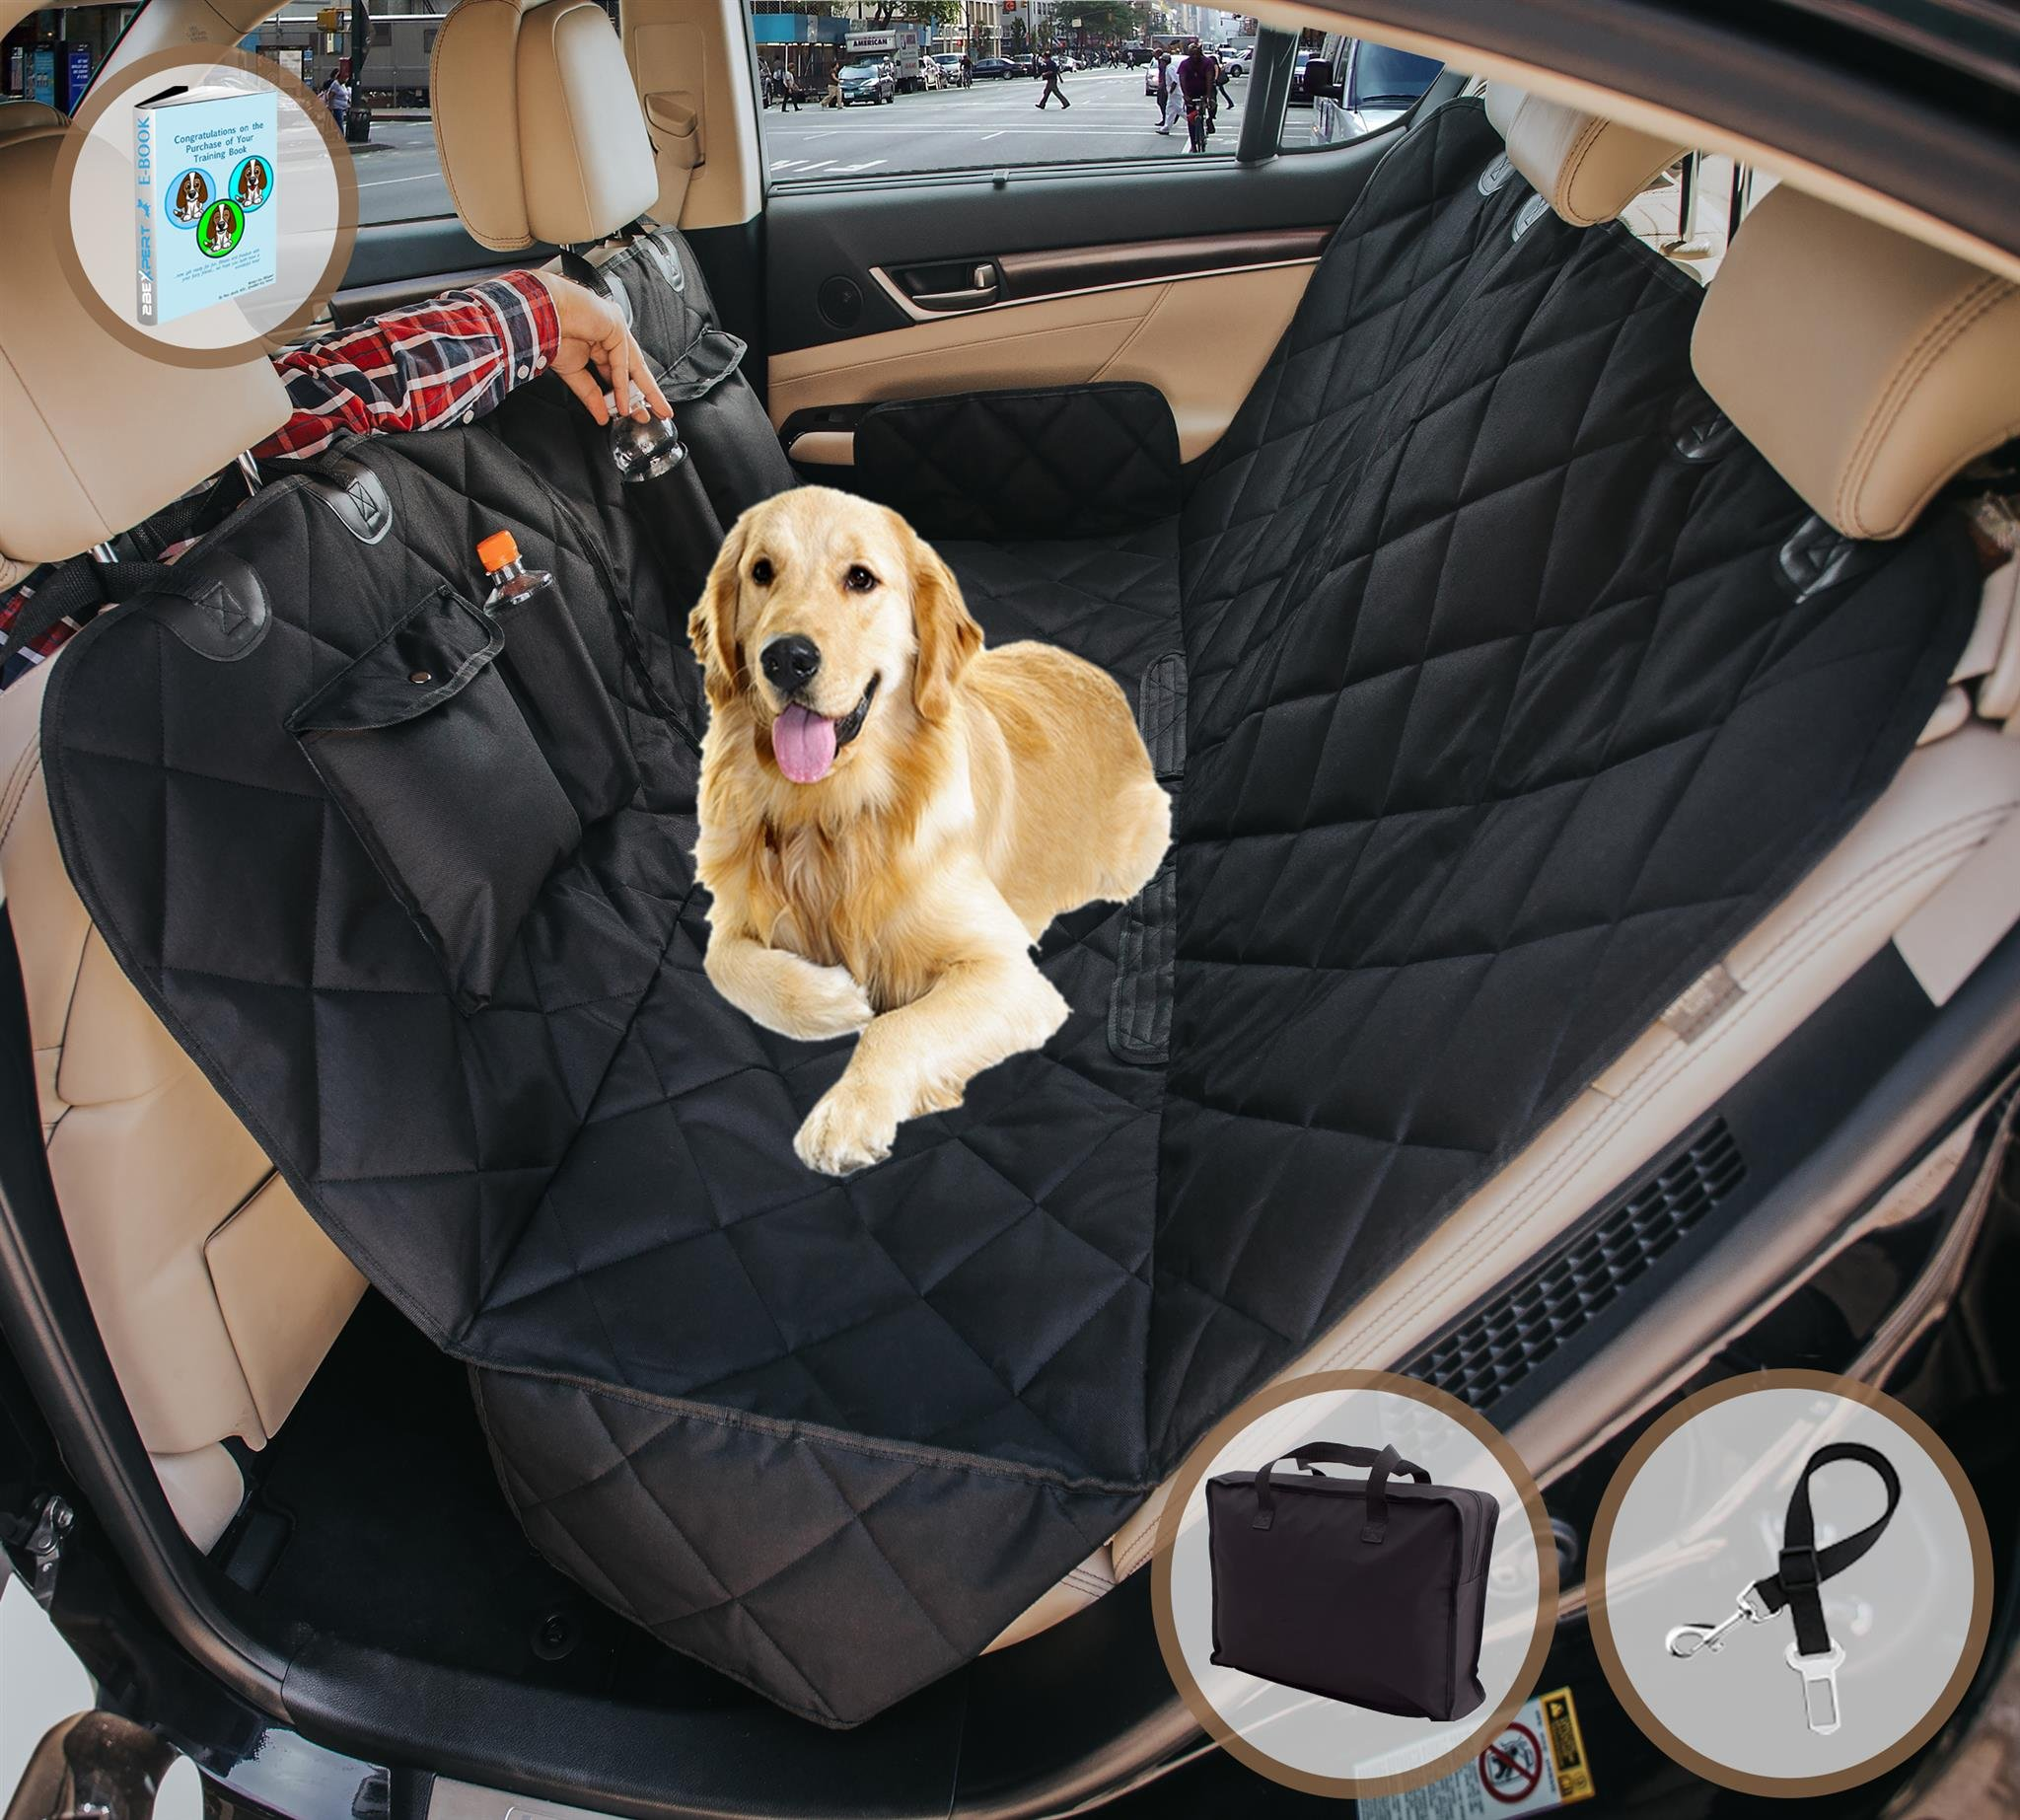 EVOest Dog Car Seat Cover for Cars/Trucks/SUV's,Hammock Convertible, Waterproof Pet Back Seat Protector with Extra Side Flaps, Bonus Pet Seat Belt & Carry Bag (Medium)